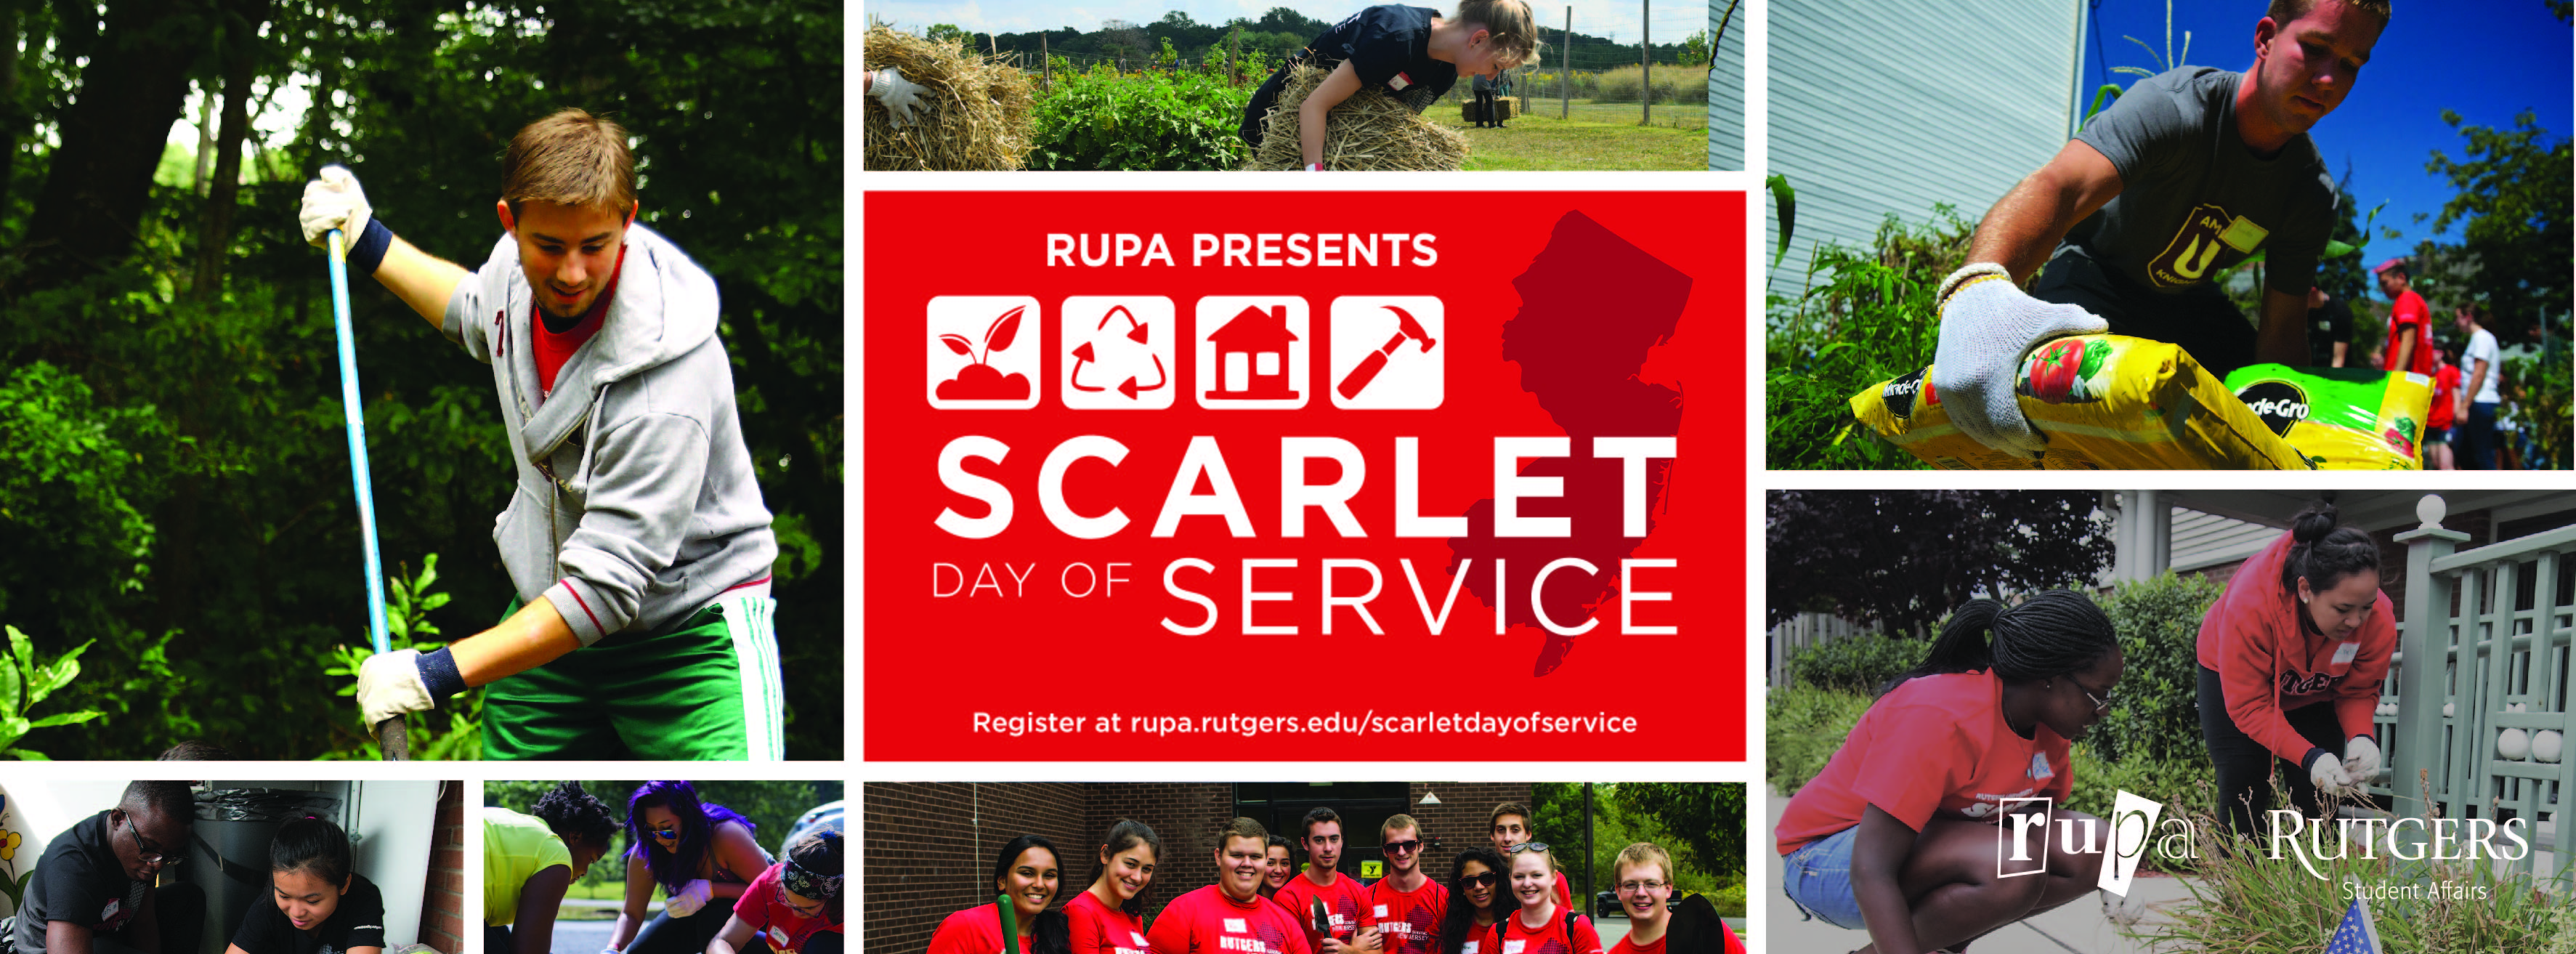 4394_rupa_presents_scarlet_day_of_service_facebook_cover_photo-01